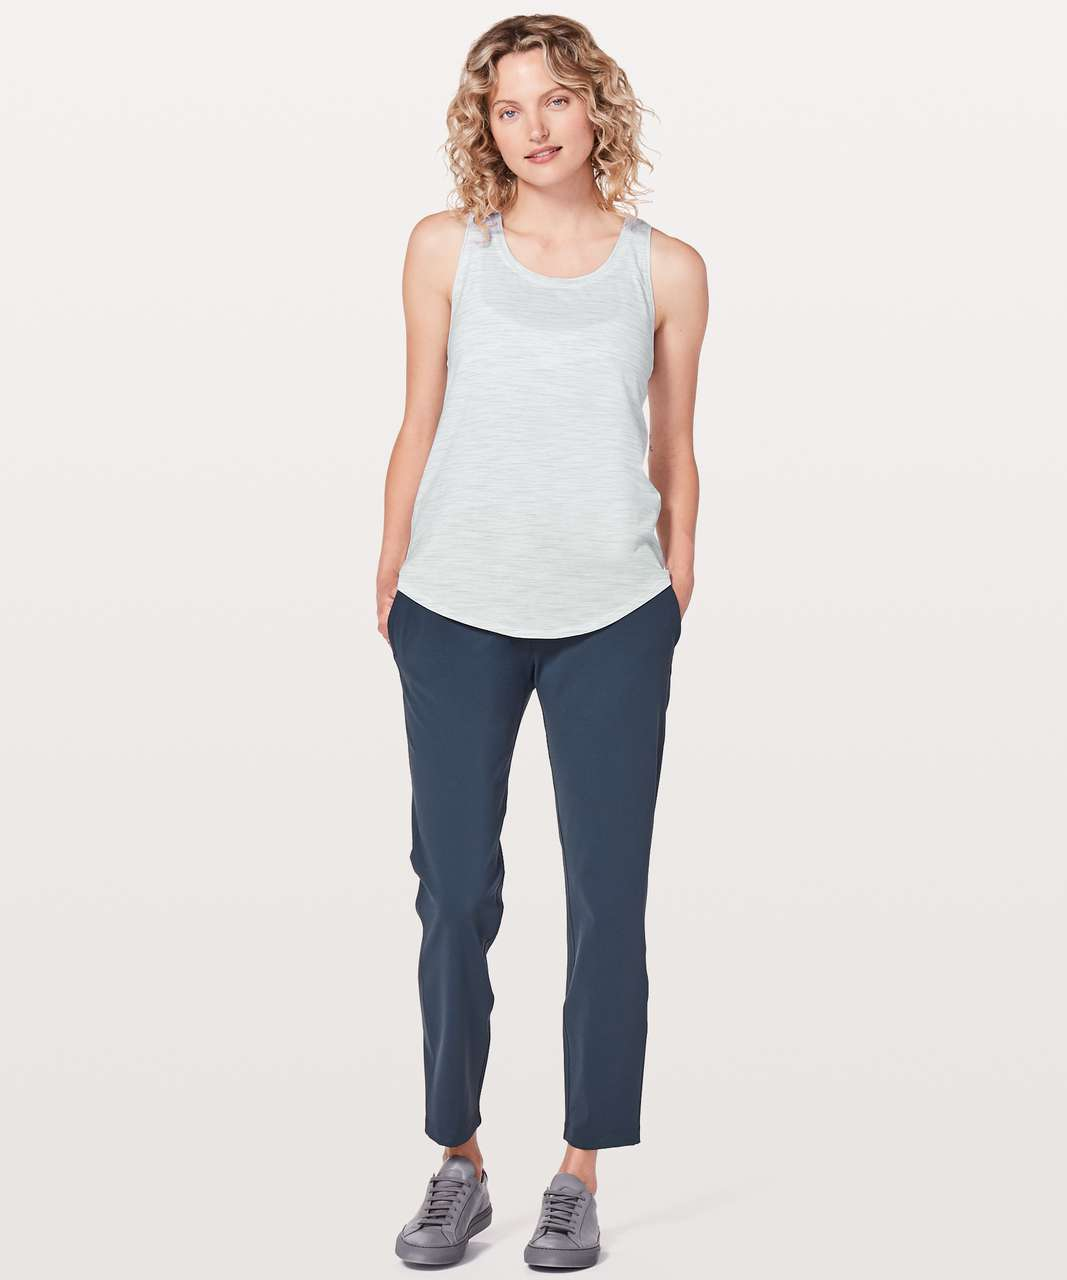 Lululemon Love Tank *Pleated - 3 Colour Space Dye Ice Grey Alpine White (First Release)